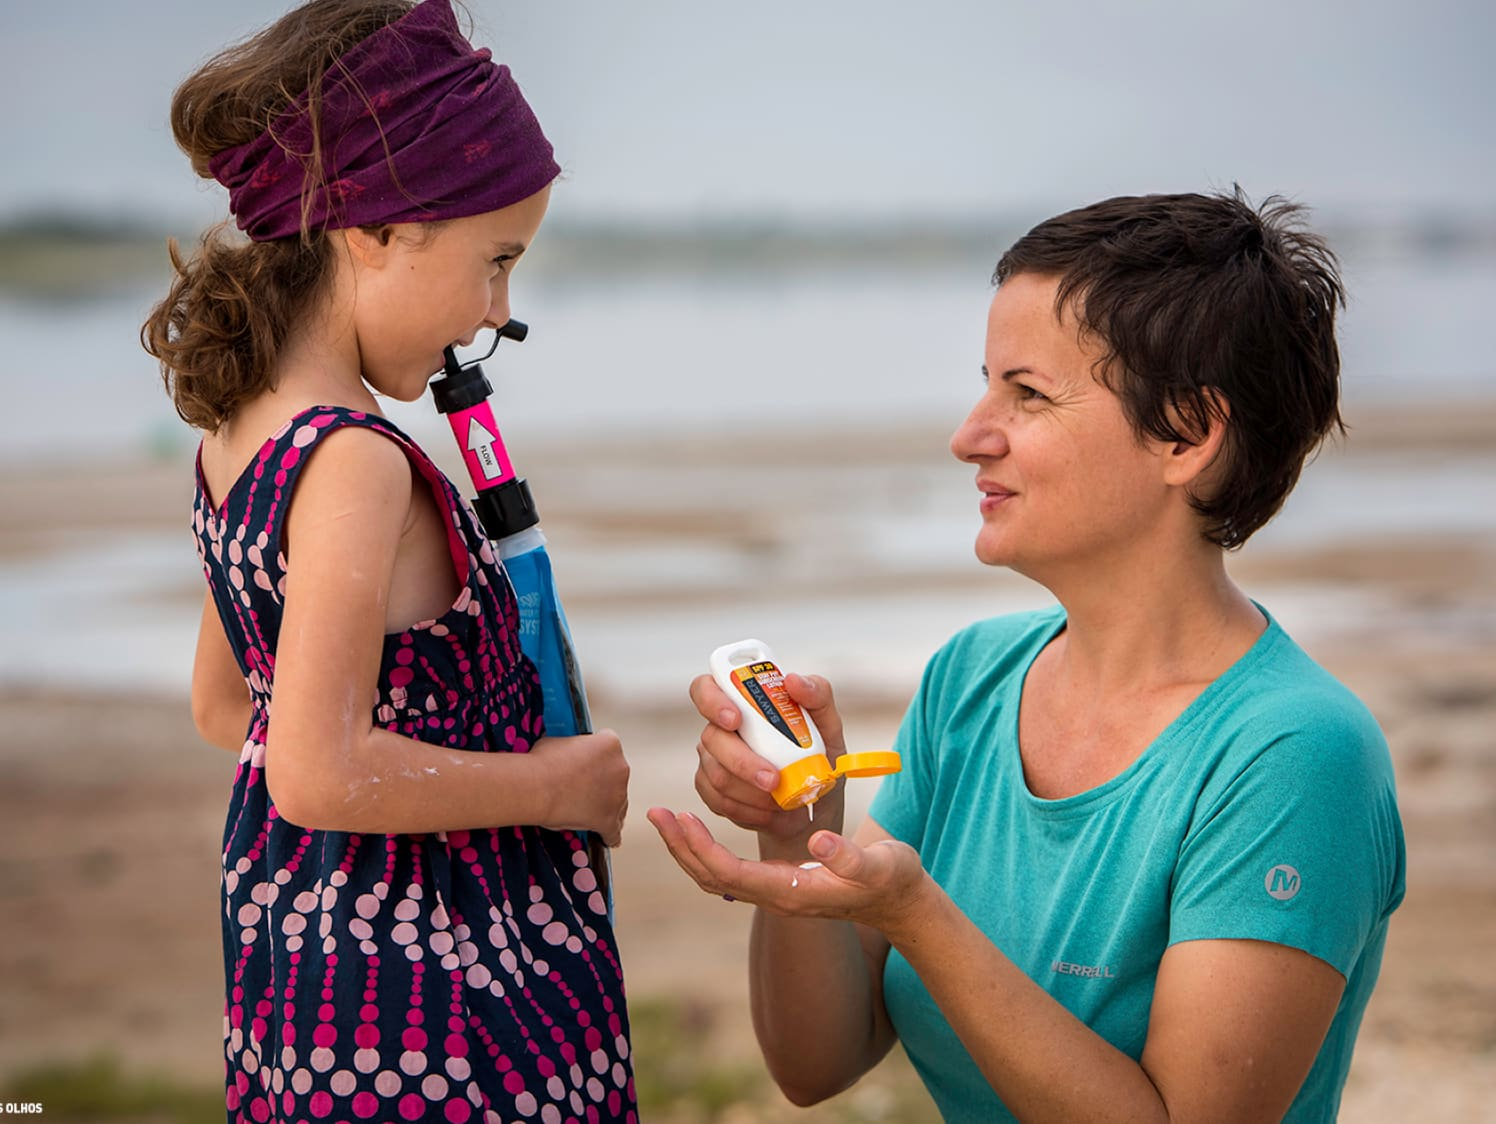 A woman applies sunscreen to her daughter, who is drinking out of a Sawyer water filter.